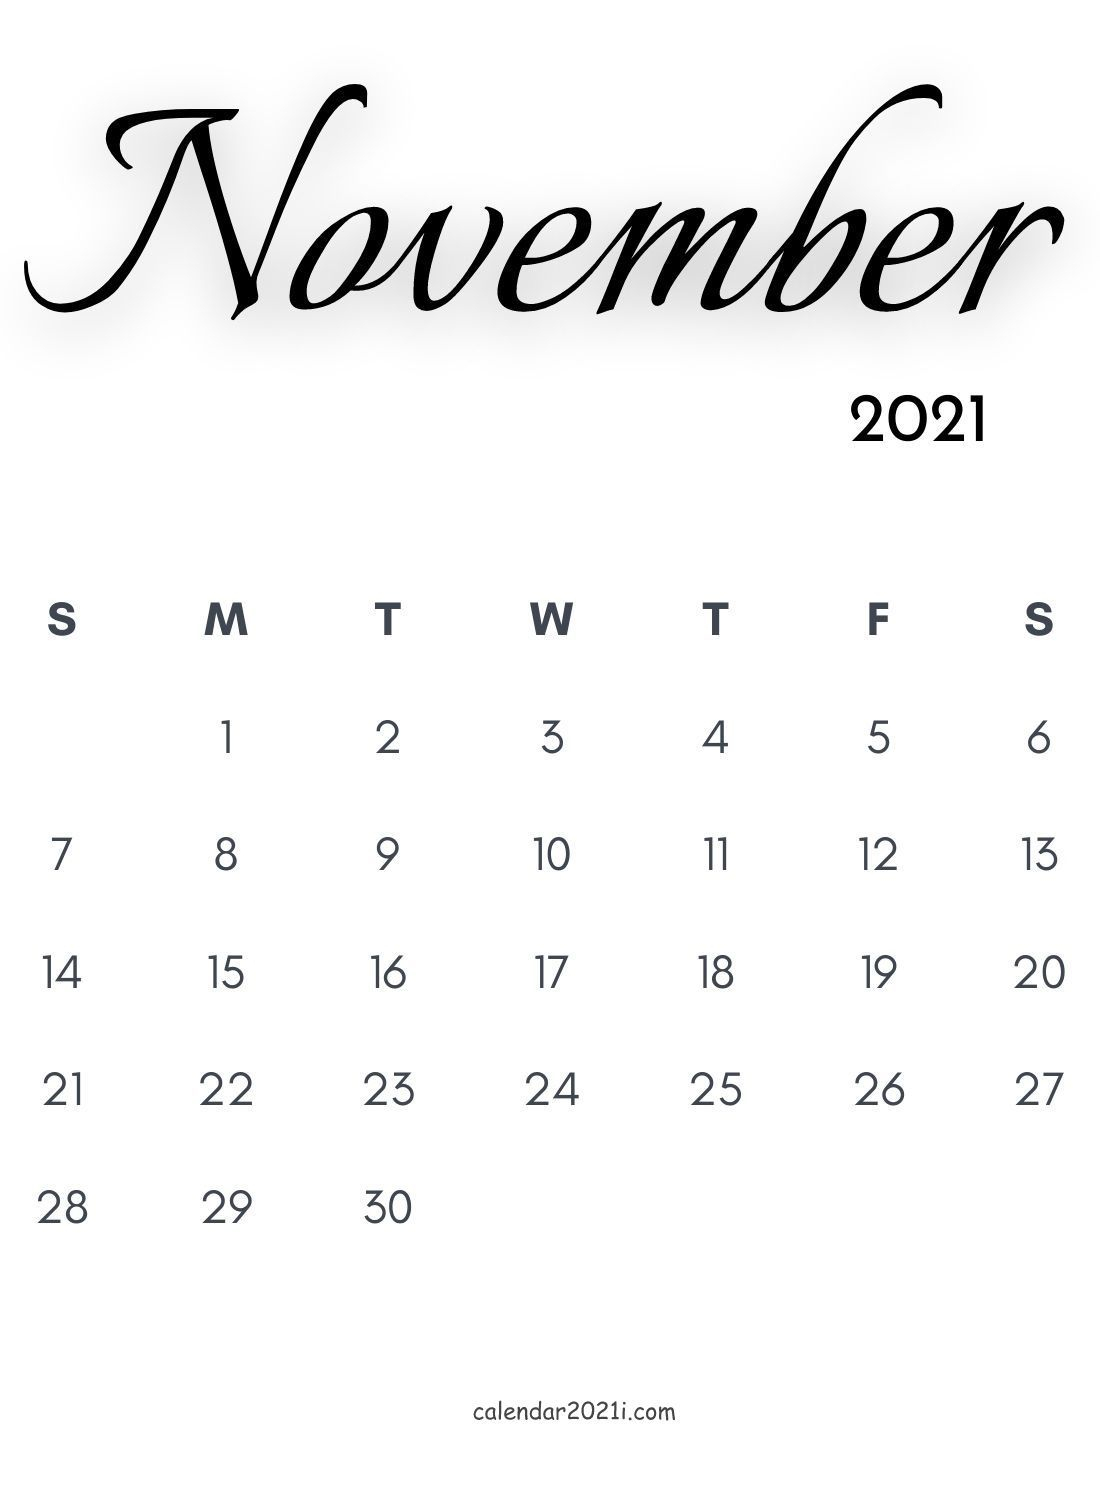 November 2021 Calligraphy Calendar Free Download | Free